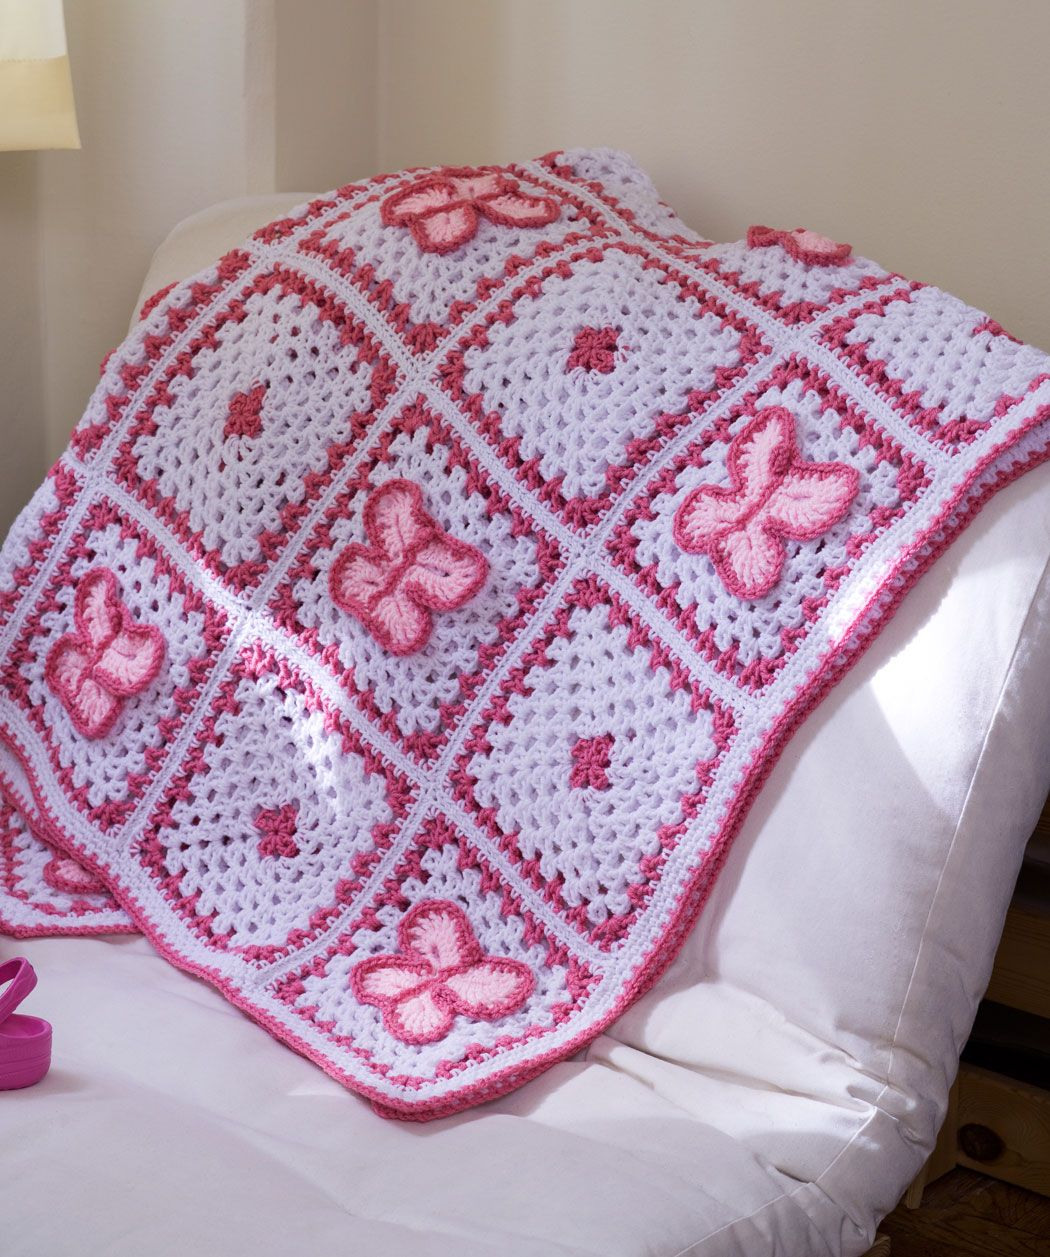 Crochet Butterfly Throw Free Pattern Crochet Squares